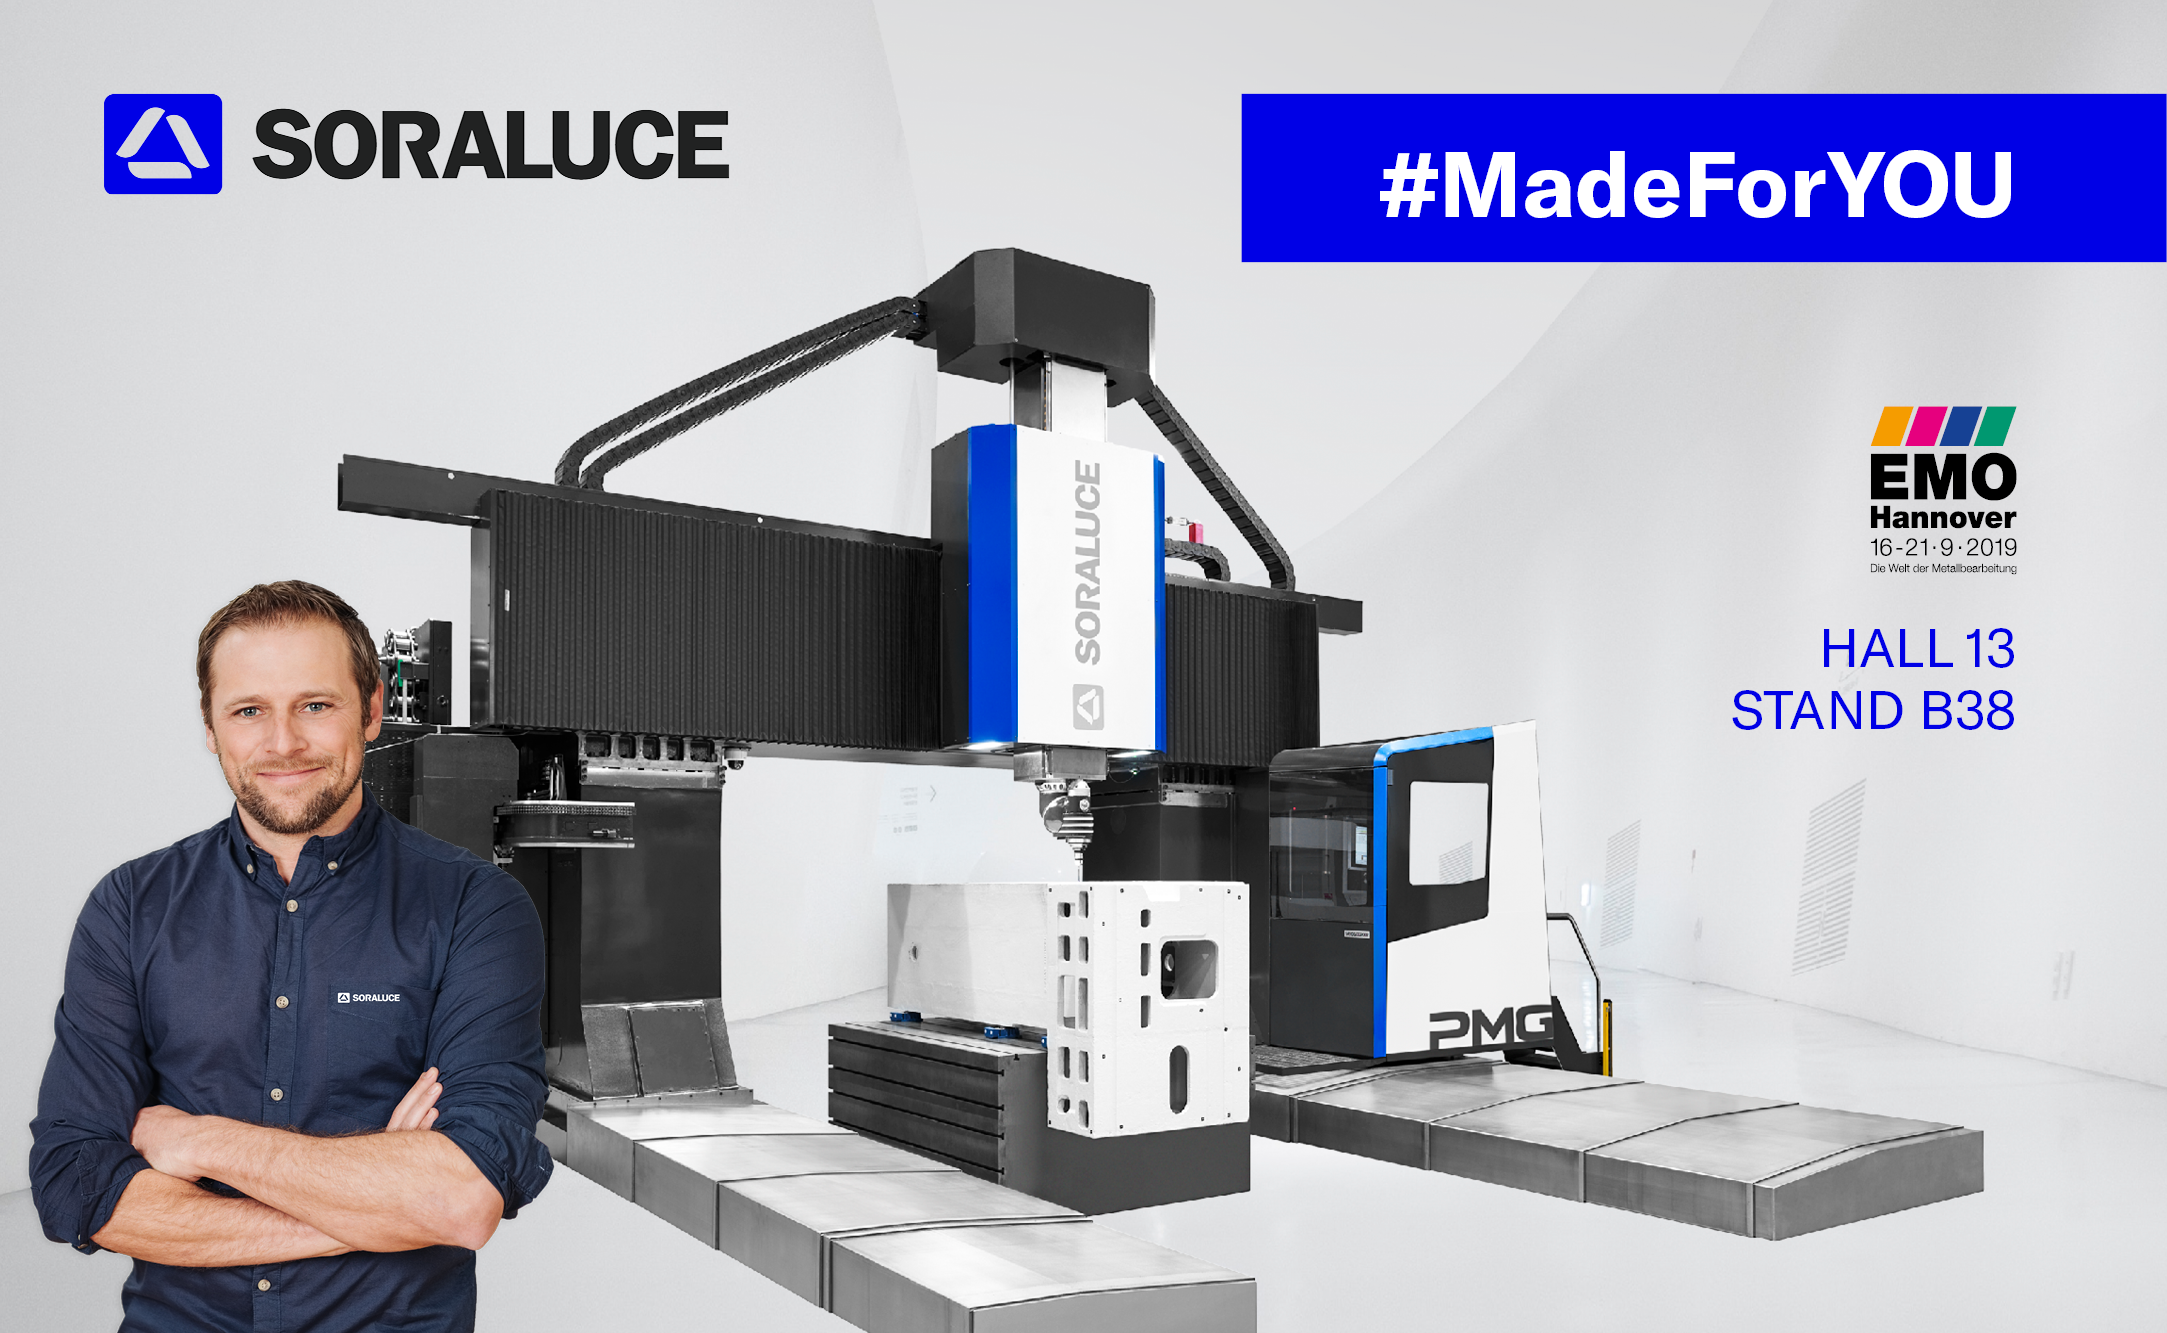 #MadeForYOU - Soraluce creates value in the day to day business of its customers